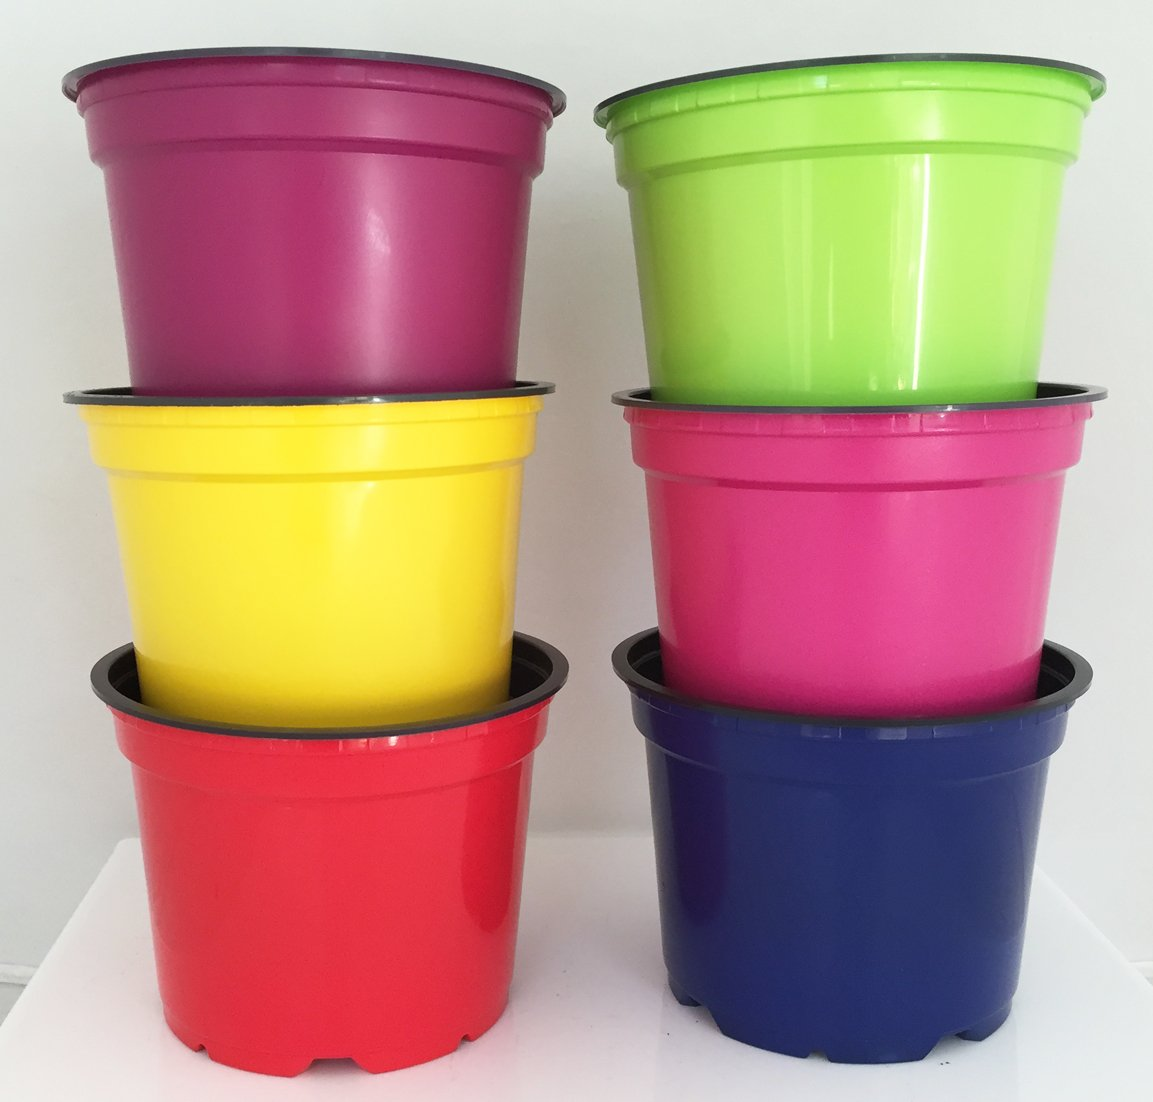 Nutley's Coloured Plant Pots, 12cm (24) Nutley's